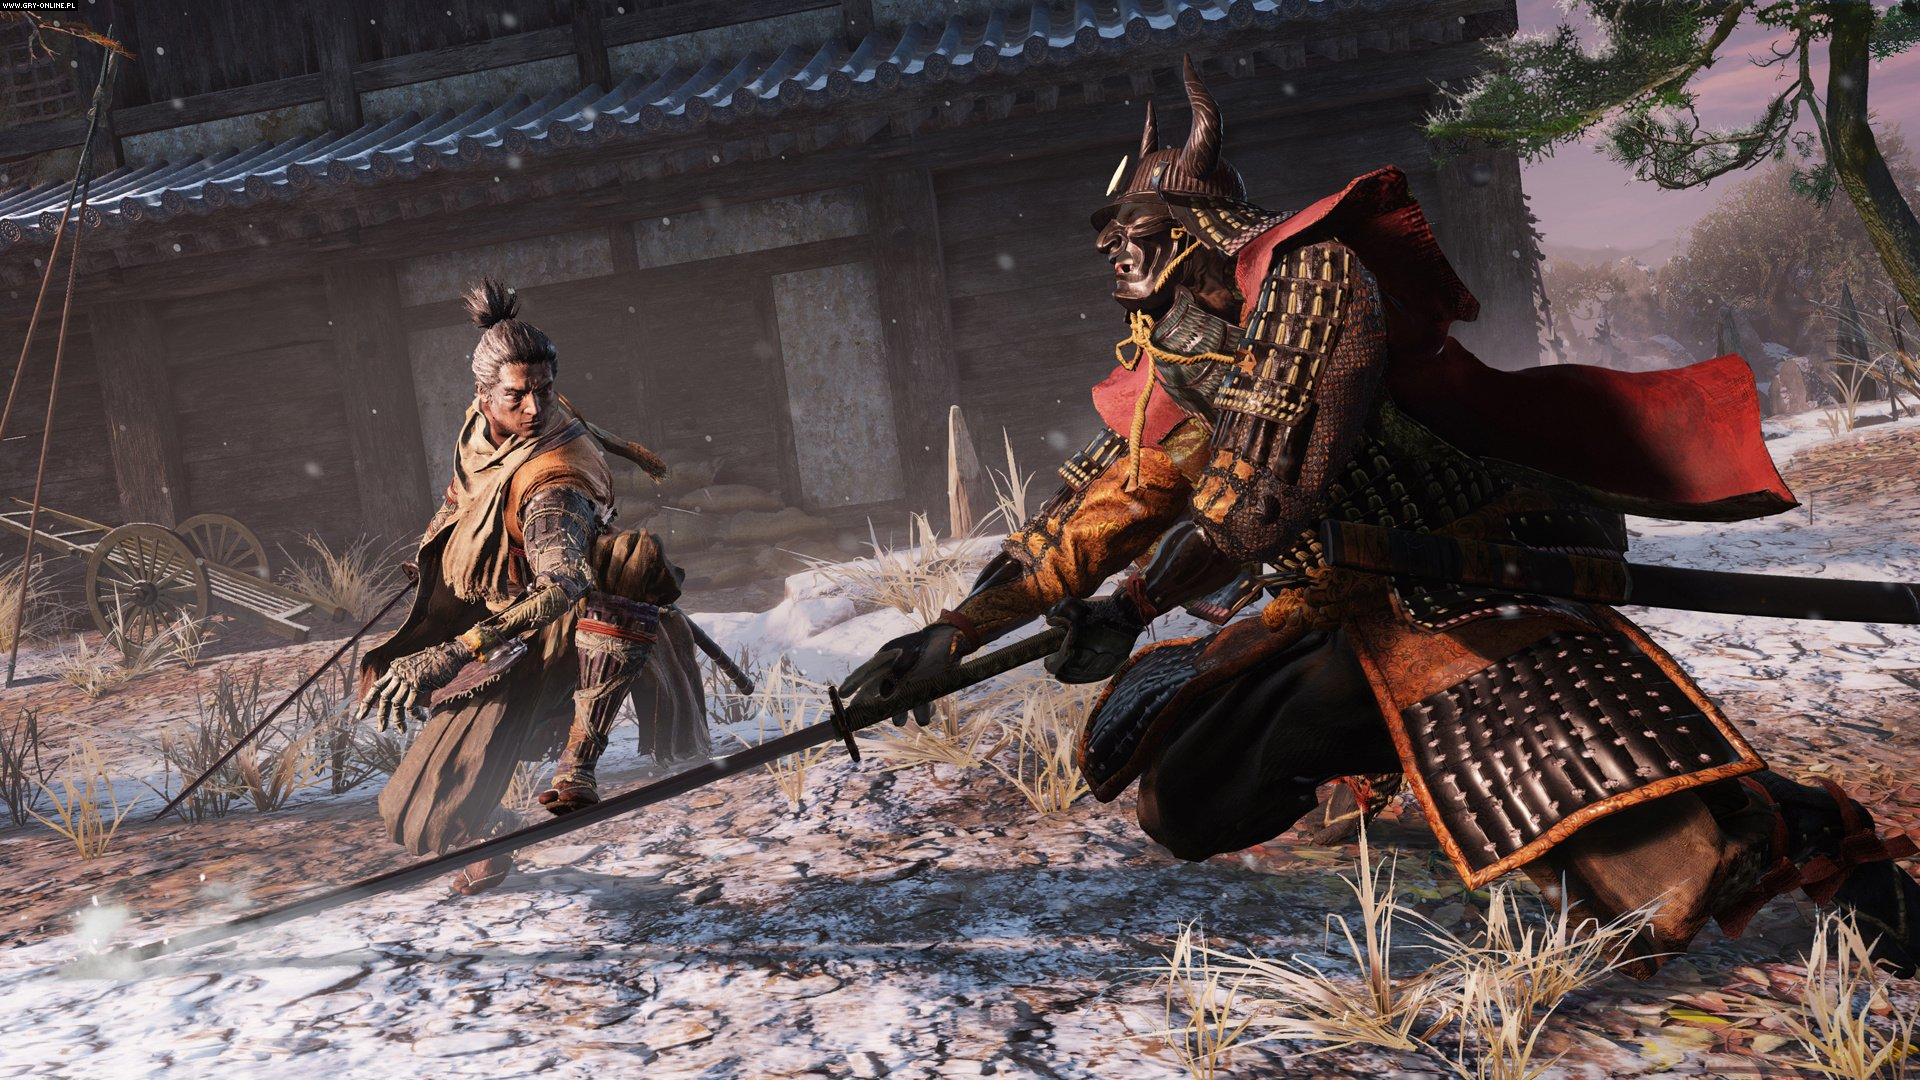 Sekiro: Shadows Die Twice PC, PS4, XONE Games Image 14/29, FromSoftware, Activision Blizzard